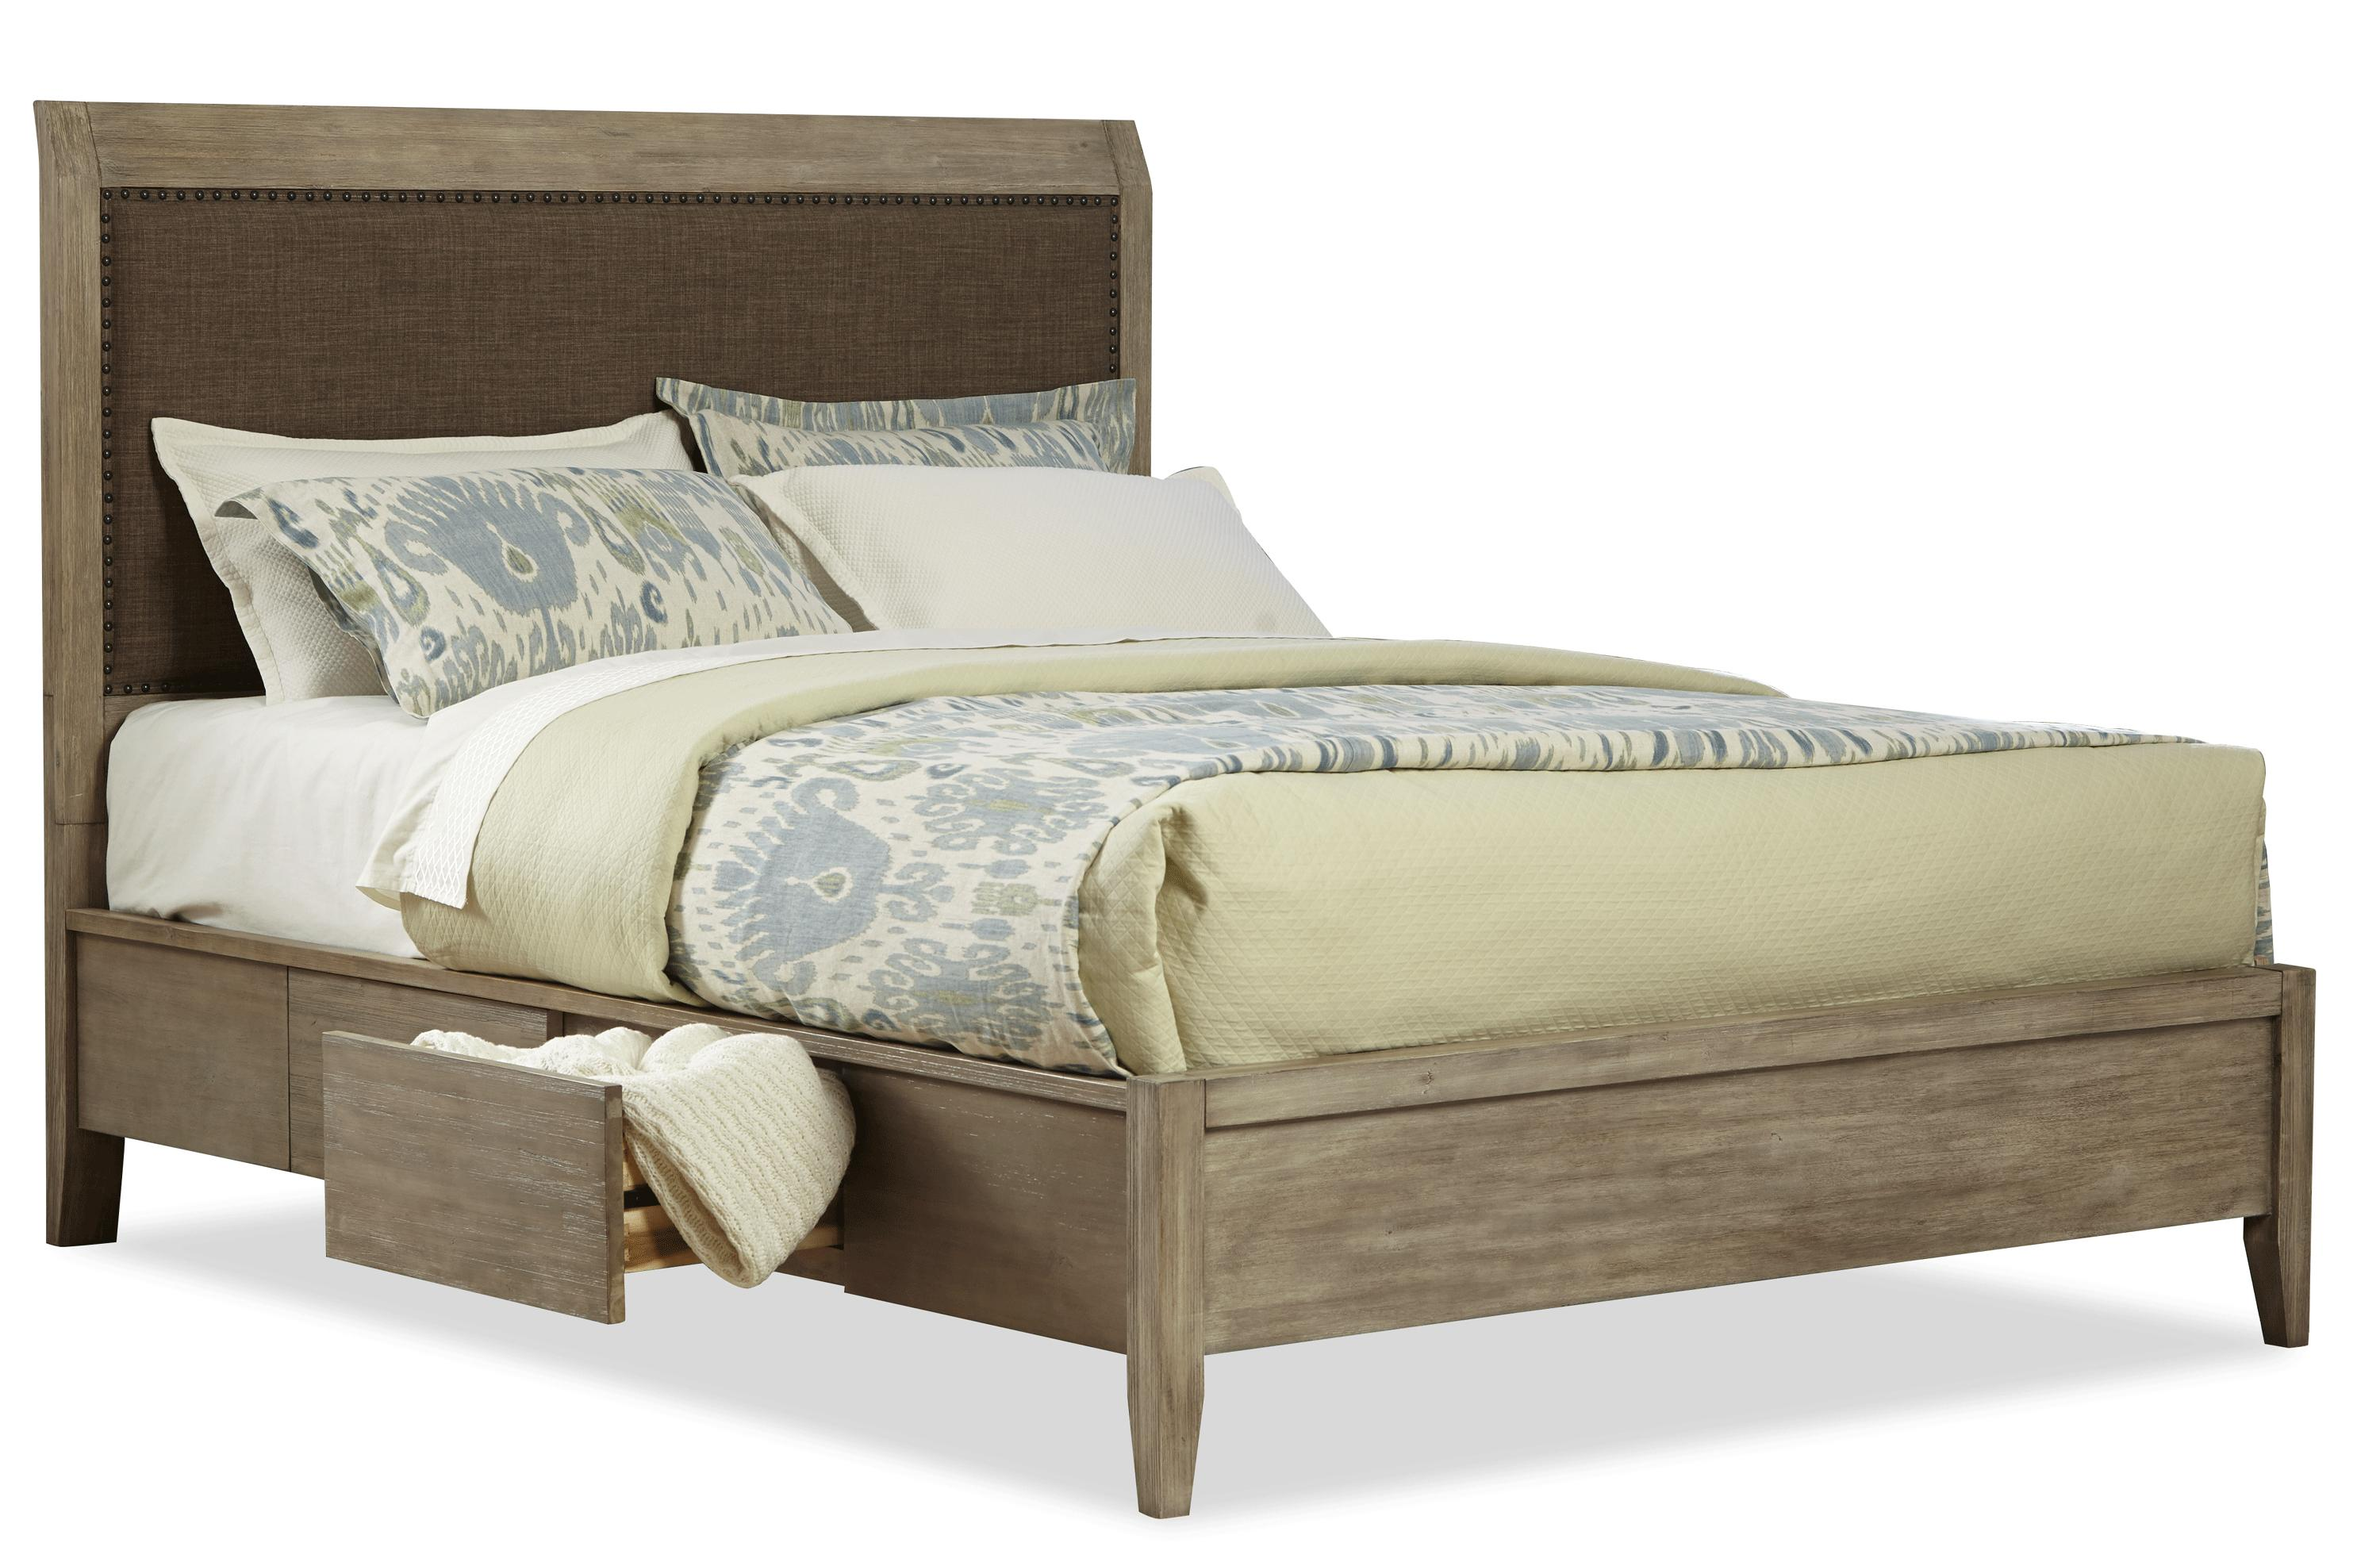 Queen Upholstered Low Profile Bed W Storage By Cresent